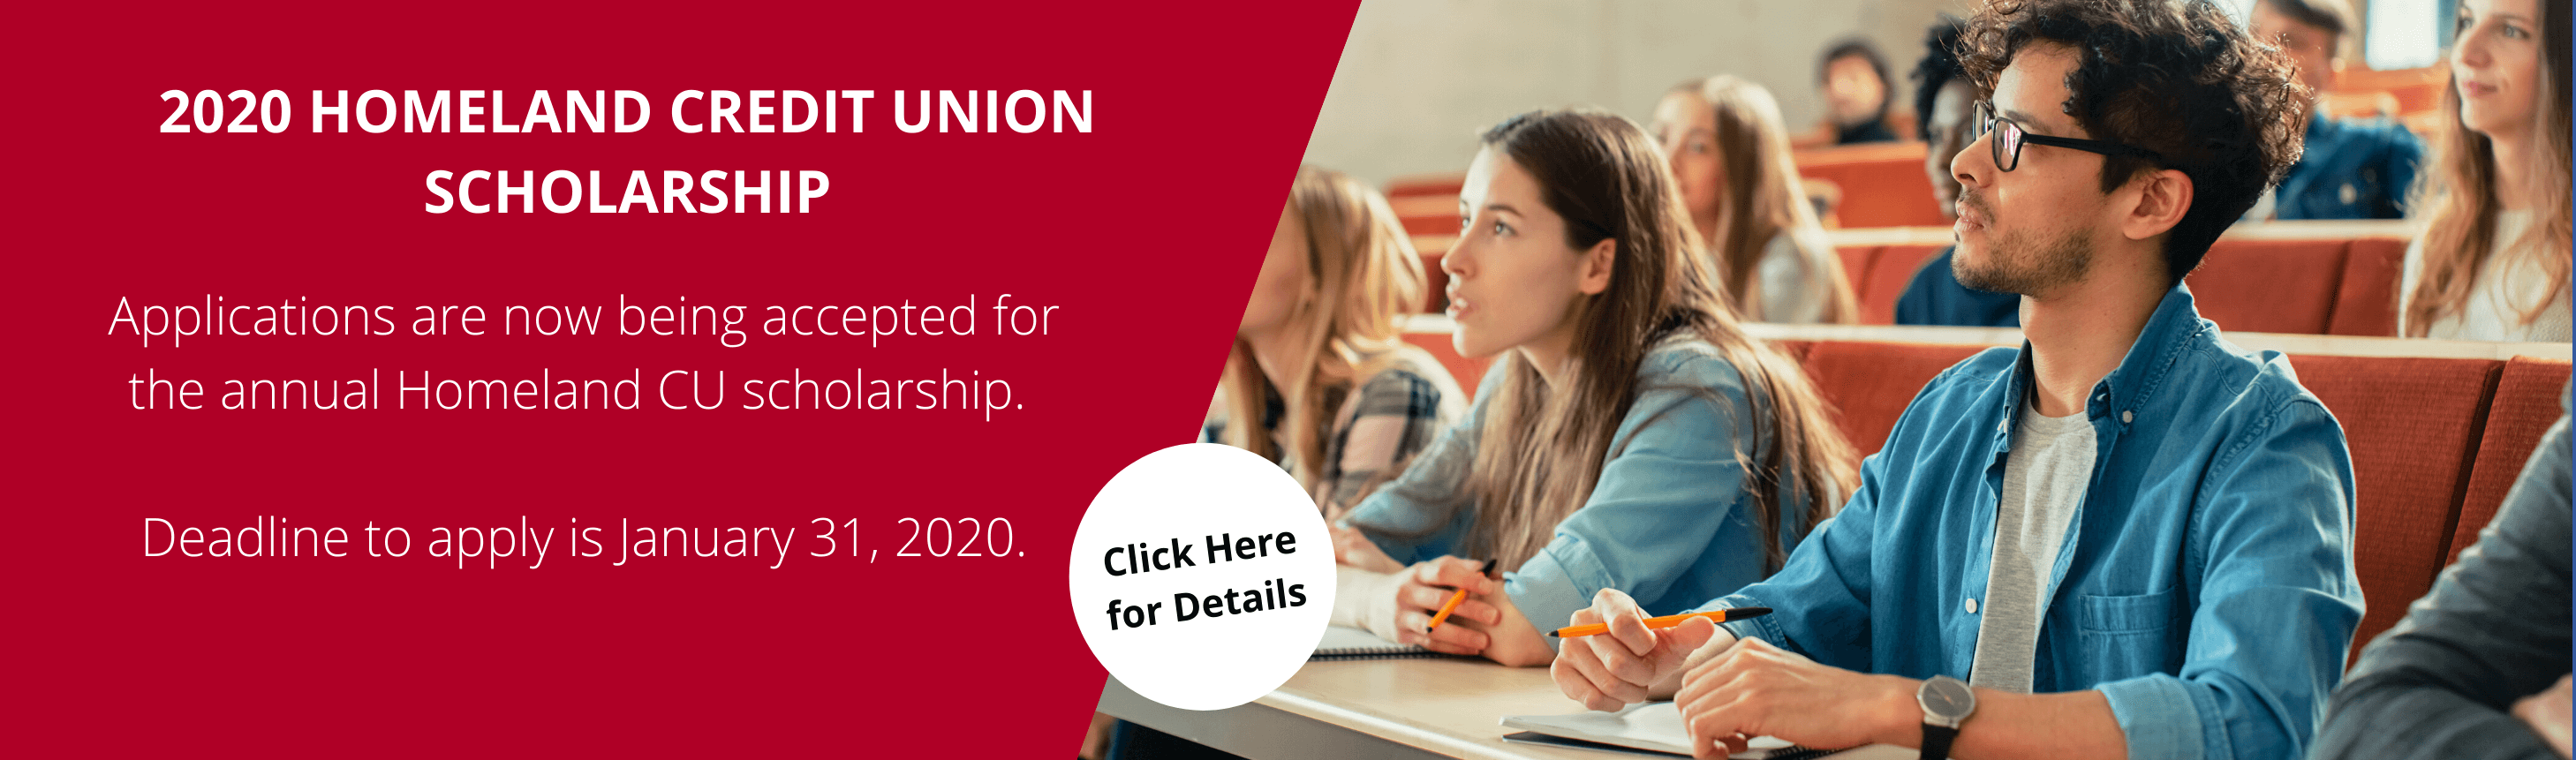 2020 Homeland Credit Union Scholarship. Applications are now being accepted for the annual Homeland CU scholarship. Deadline to apply is January 31, 2020. Click Here for Details.